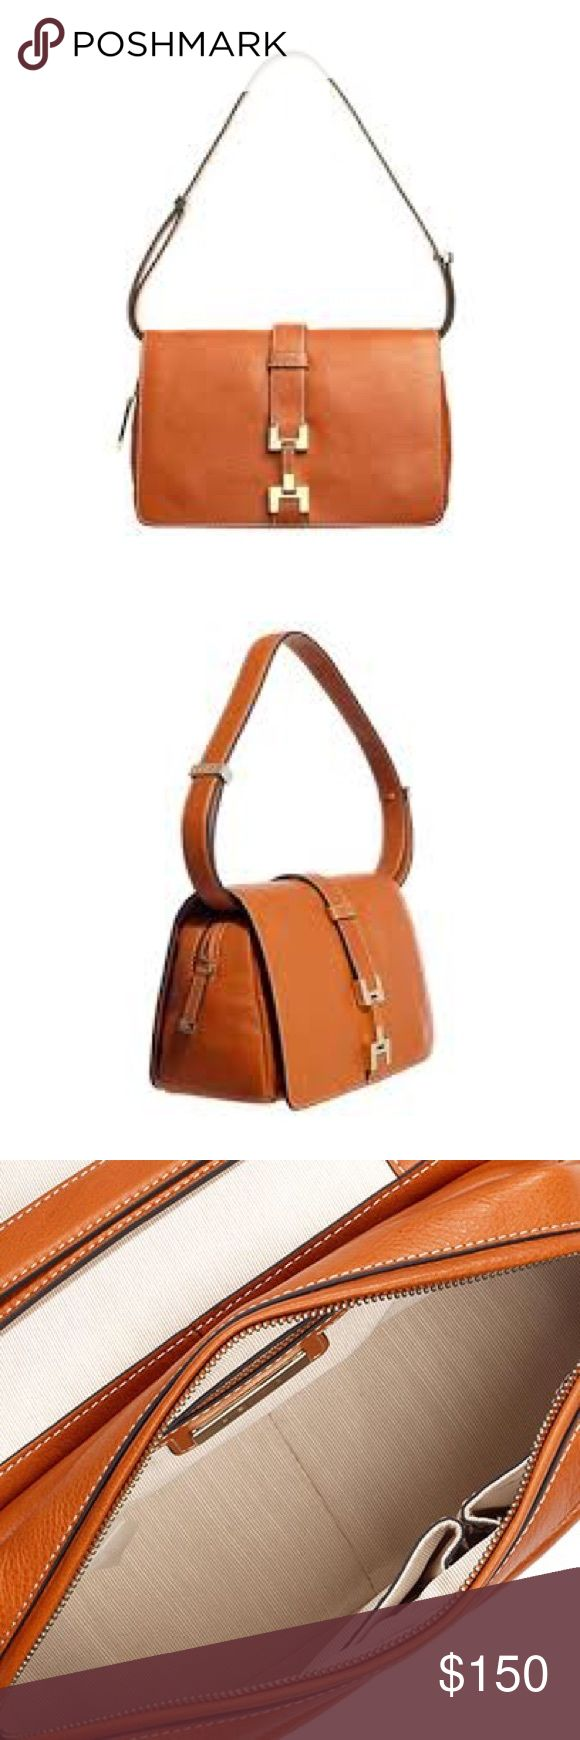 Reiss Orange Handbag with Adjustable Straps - Elegant Reiss Orange handbag perfect for spring / summer - Buckle detail in front and adjustable straps to convert to shoulder bag / crossbody  - Snap closure (two snaps) and zipper closure  - Two open pockets inside as well as one zip-pocket - Very gently used. A little mark on the strap from adjusting strap. Otherwise in perfect condition! Reiss Bags